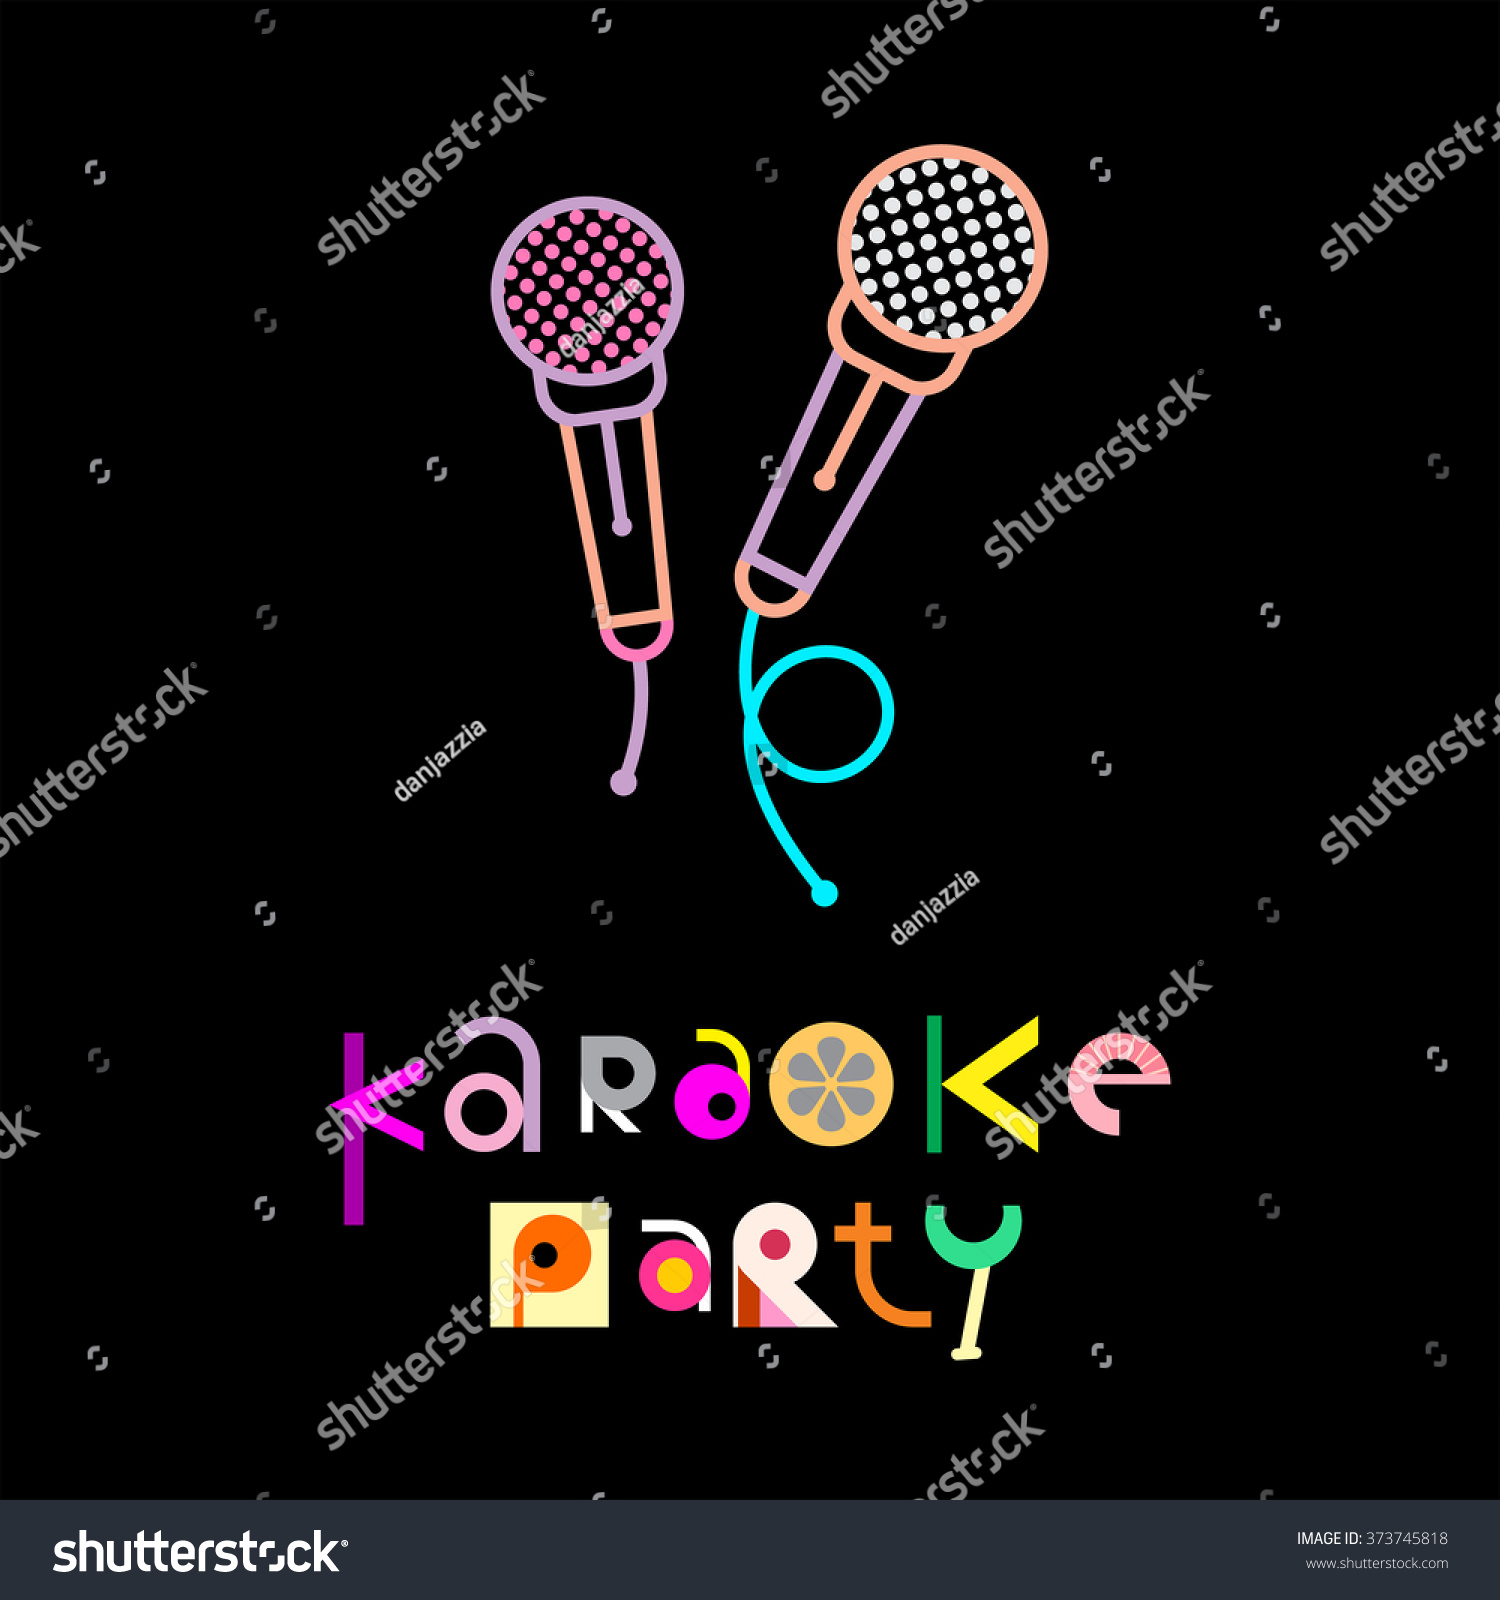 Karaoke Party Decorative Text Architecture On Stock Vector ...